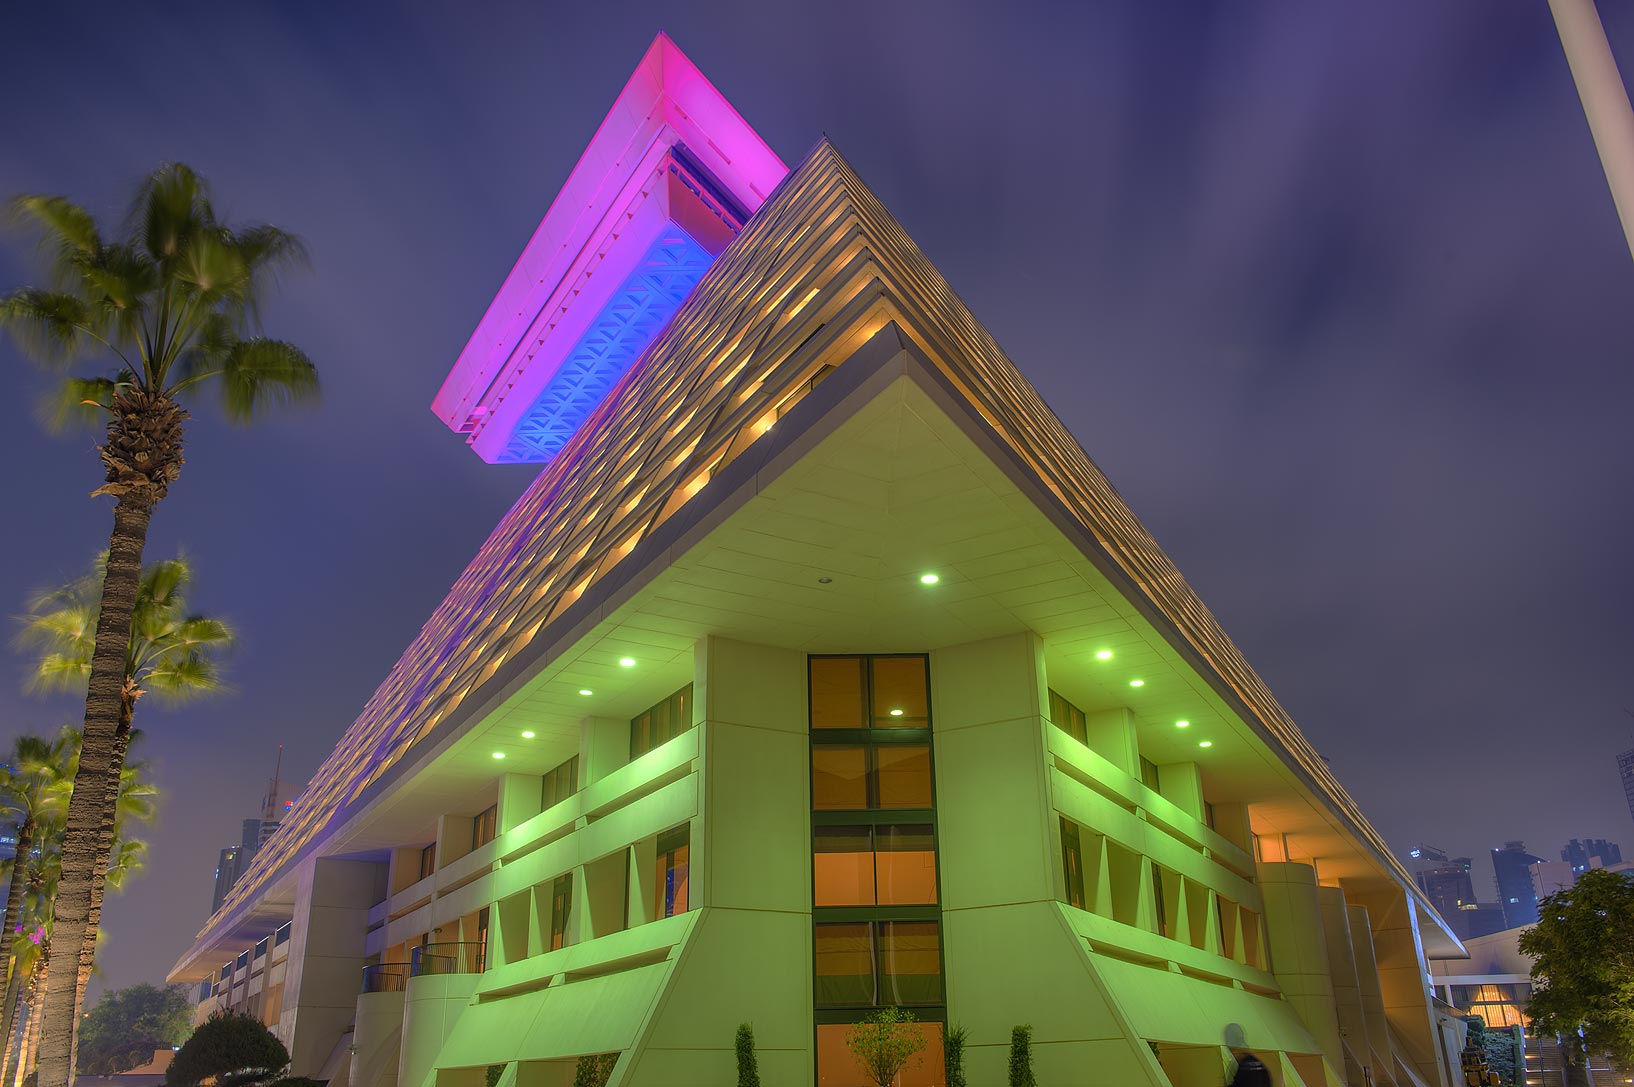 Illuminated corner of Sheraton Hotel at evening. Doha, Qatar